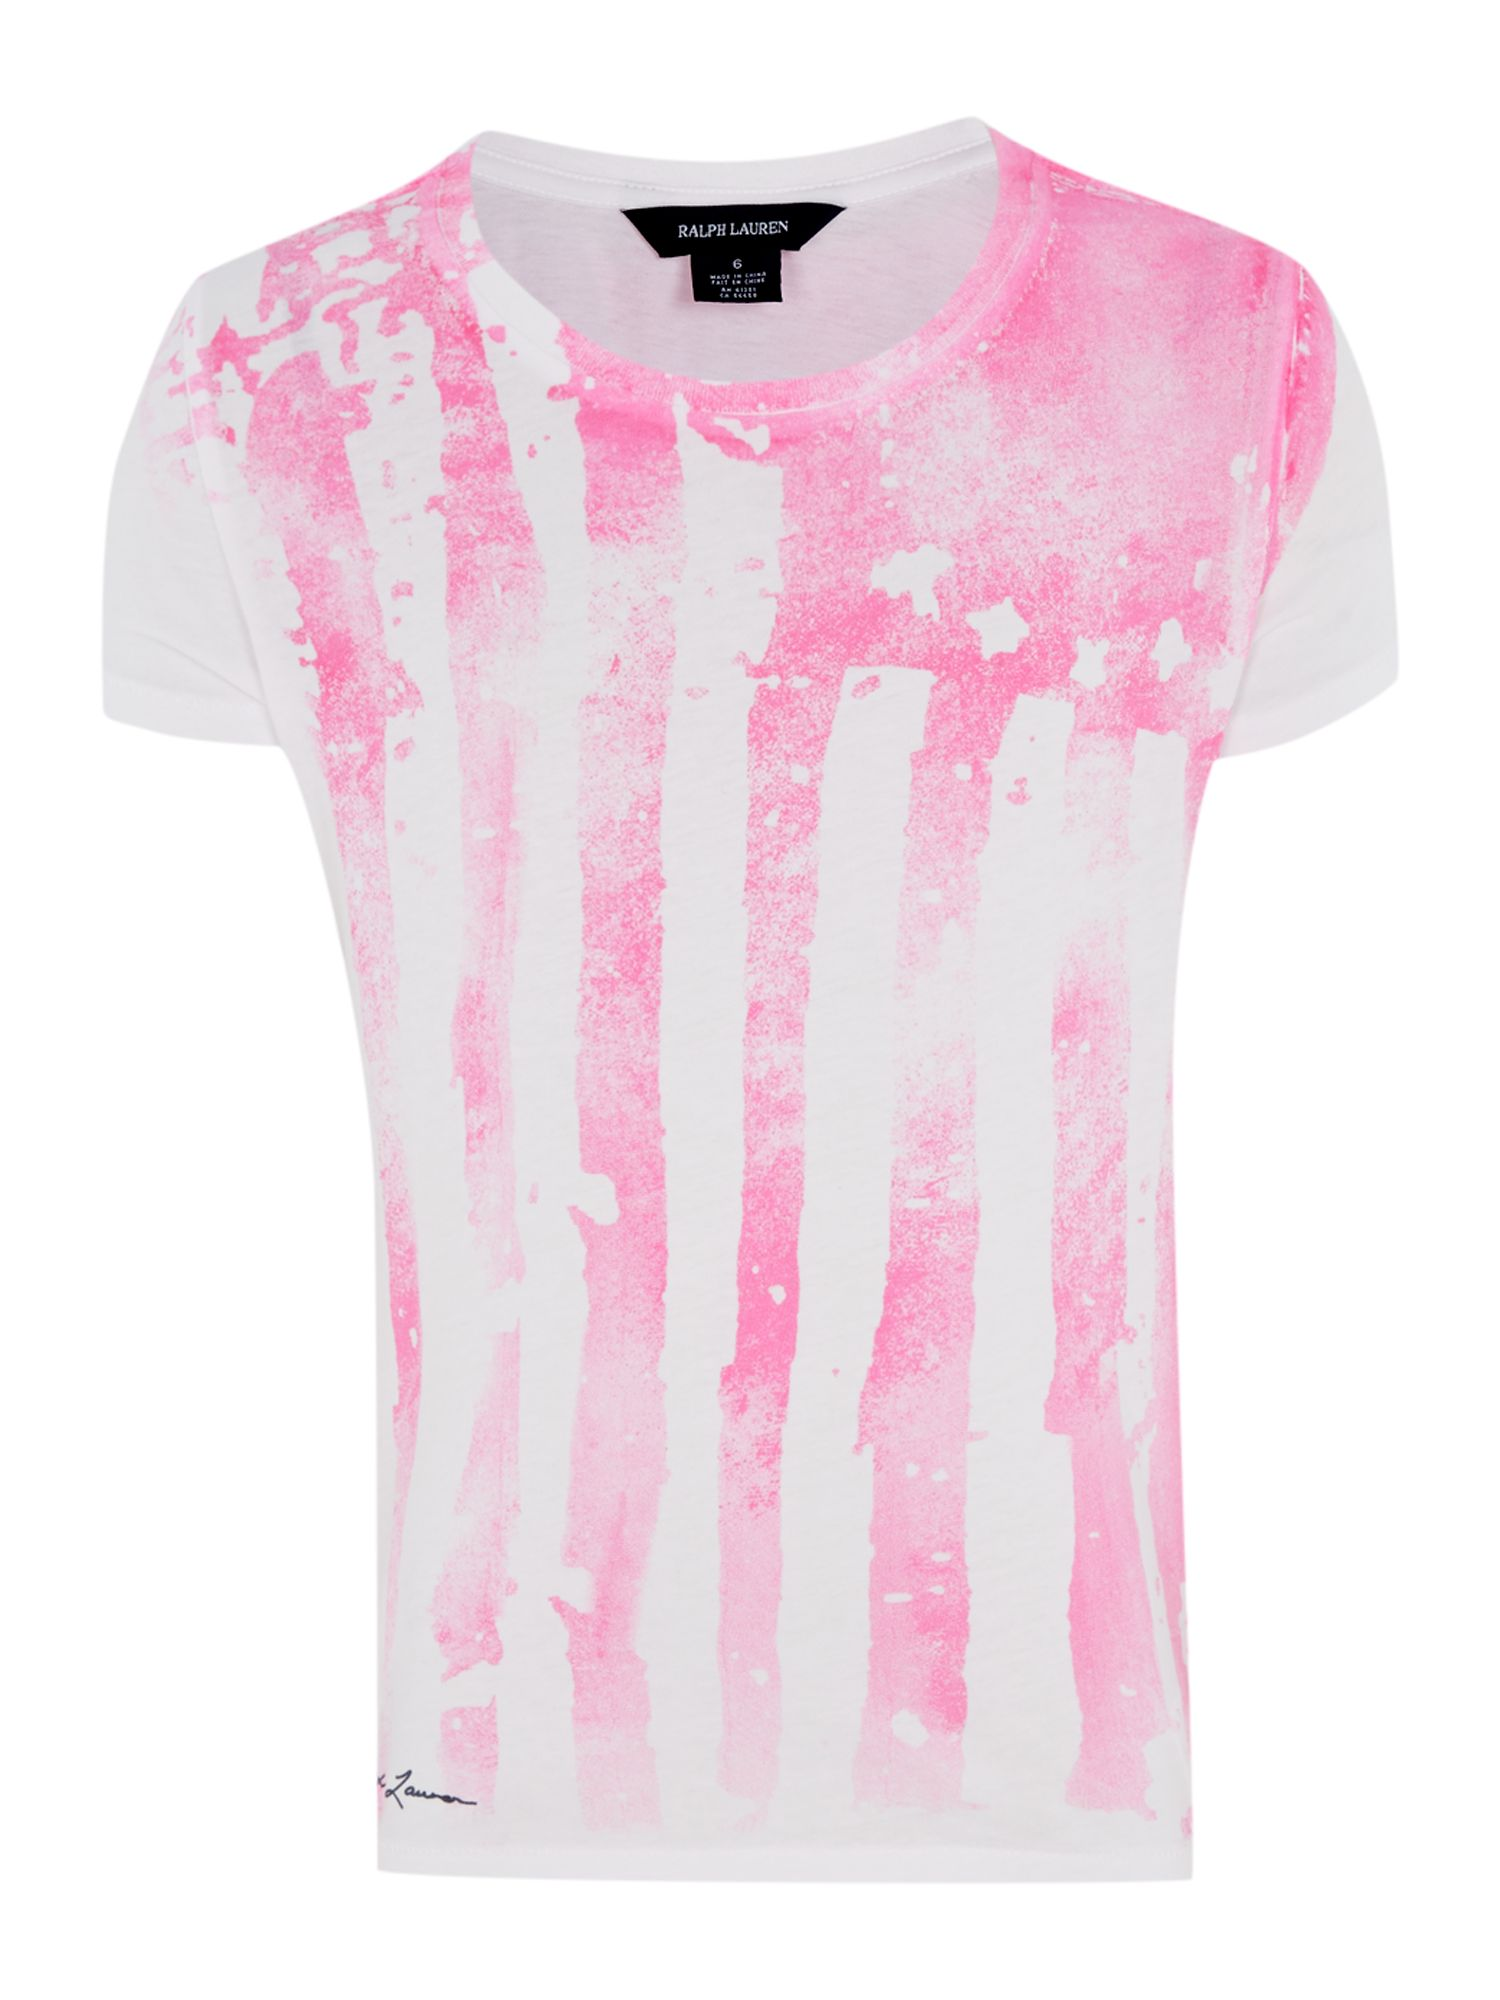 Girls neon America t-shirt